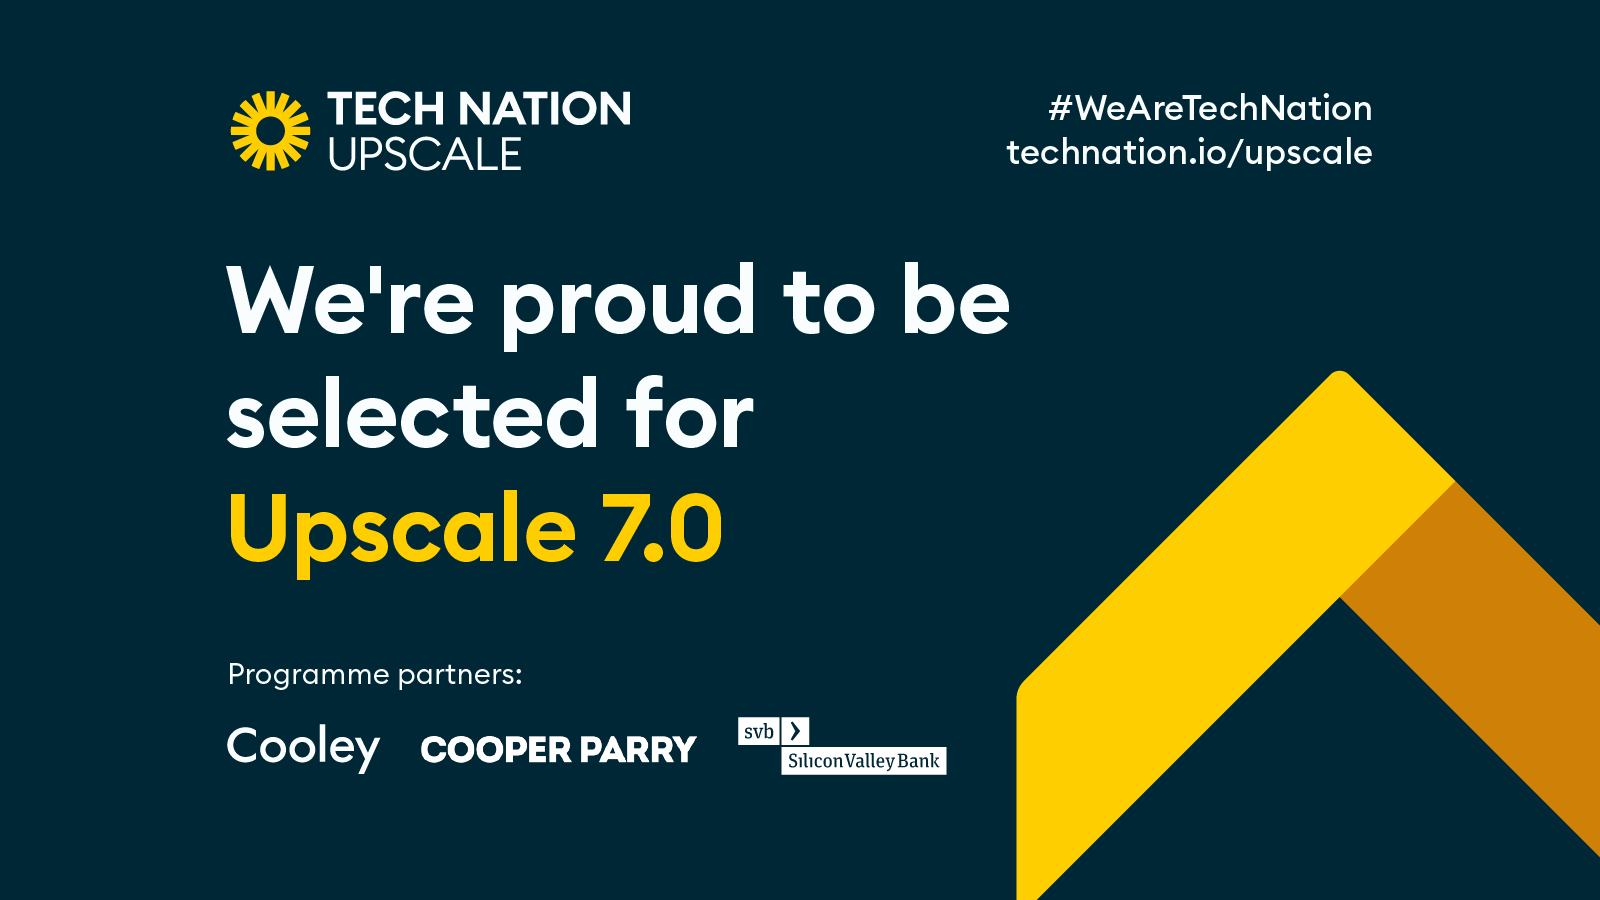 Logically selected for Tech Nation Upscale 7.0